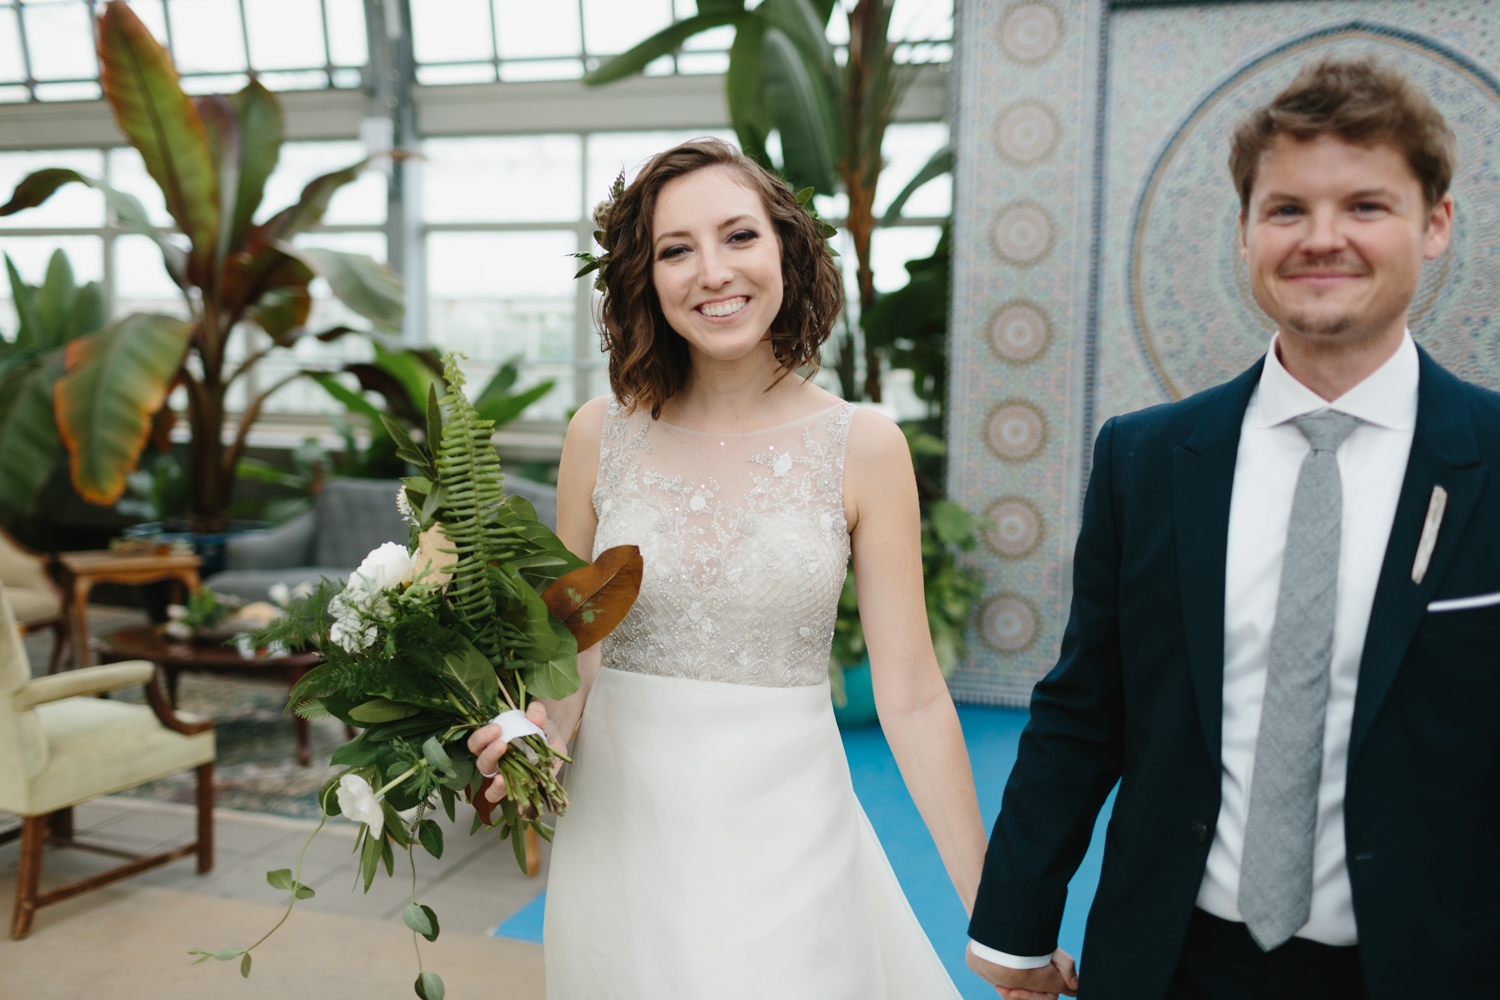 Chicago Garfield Park Conservatory Wedding by Northern Michigan Photographer Mae Stier-071.jpg